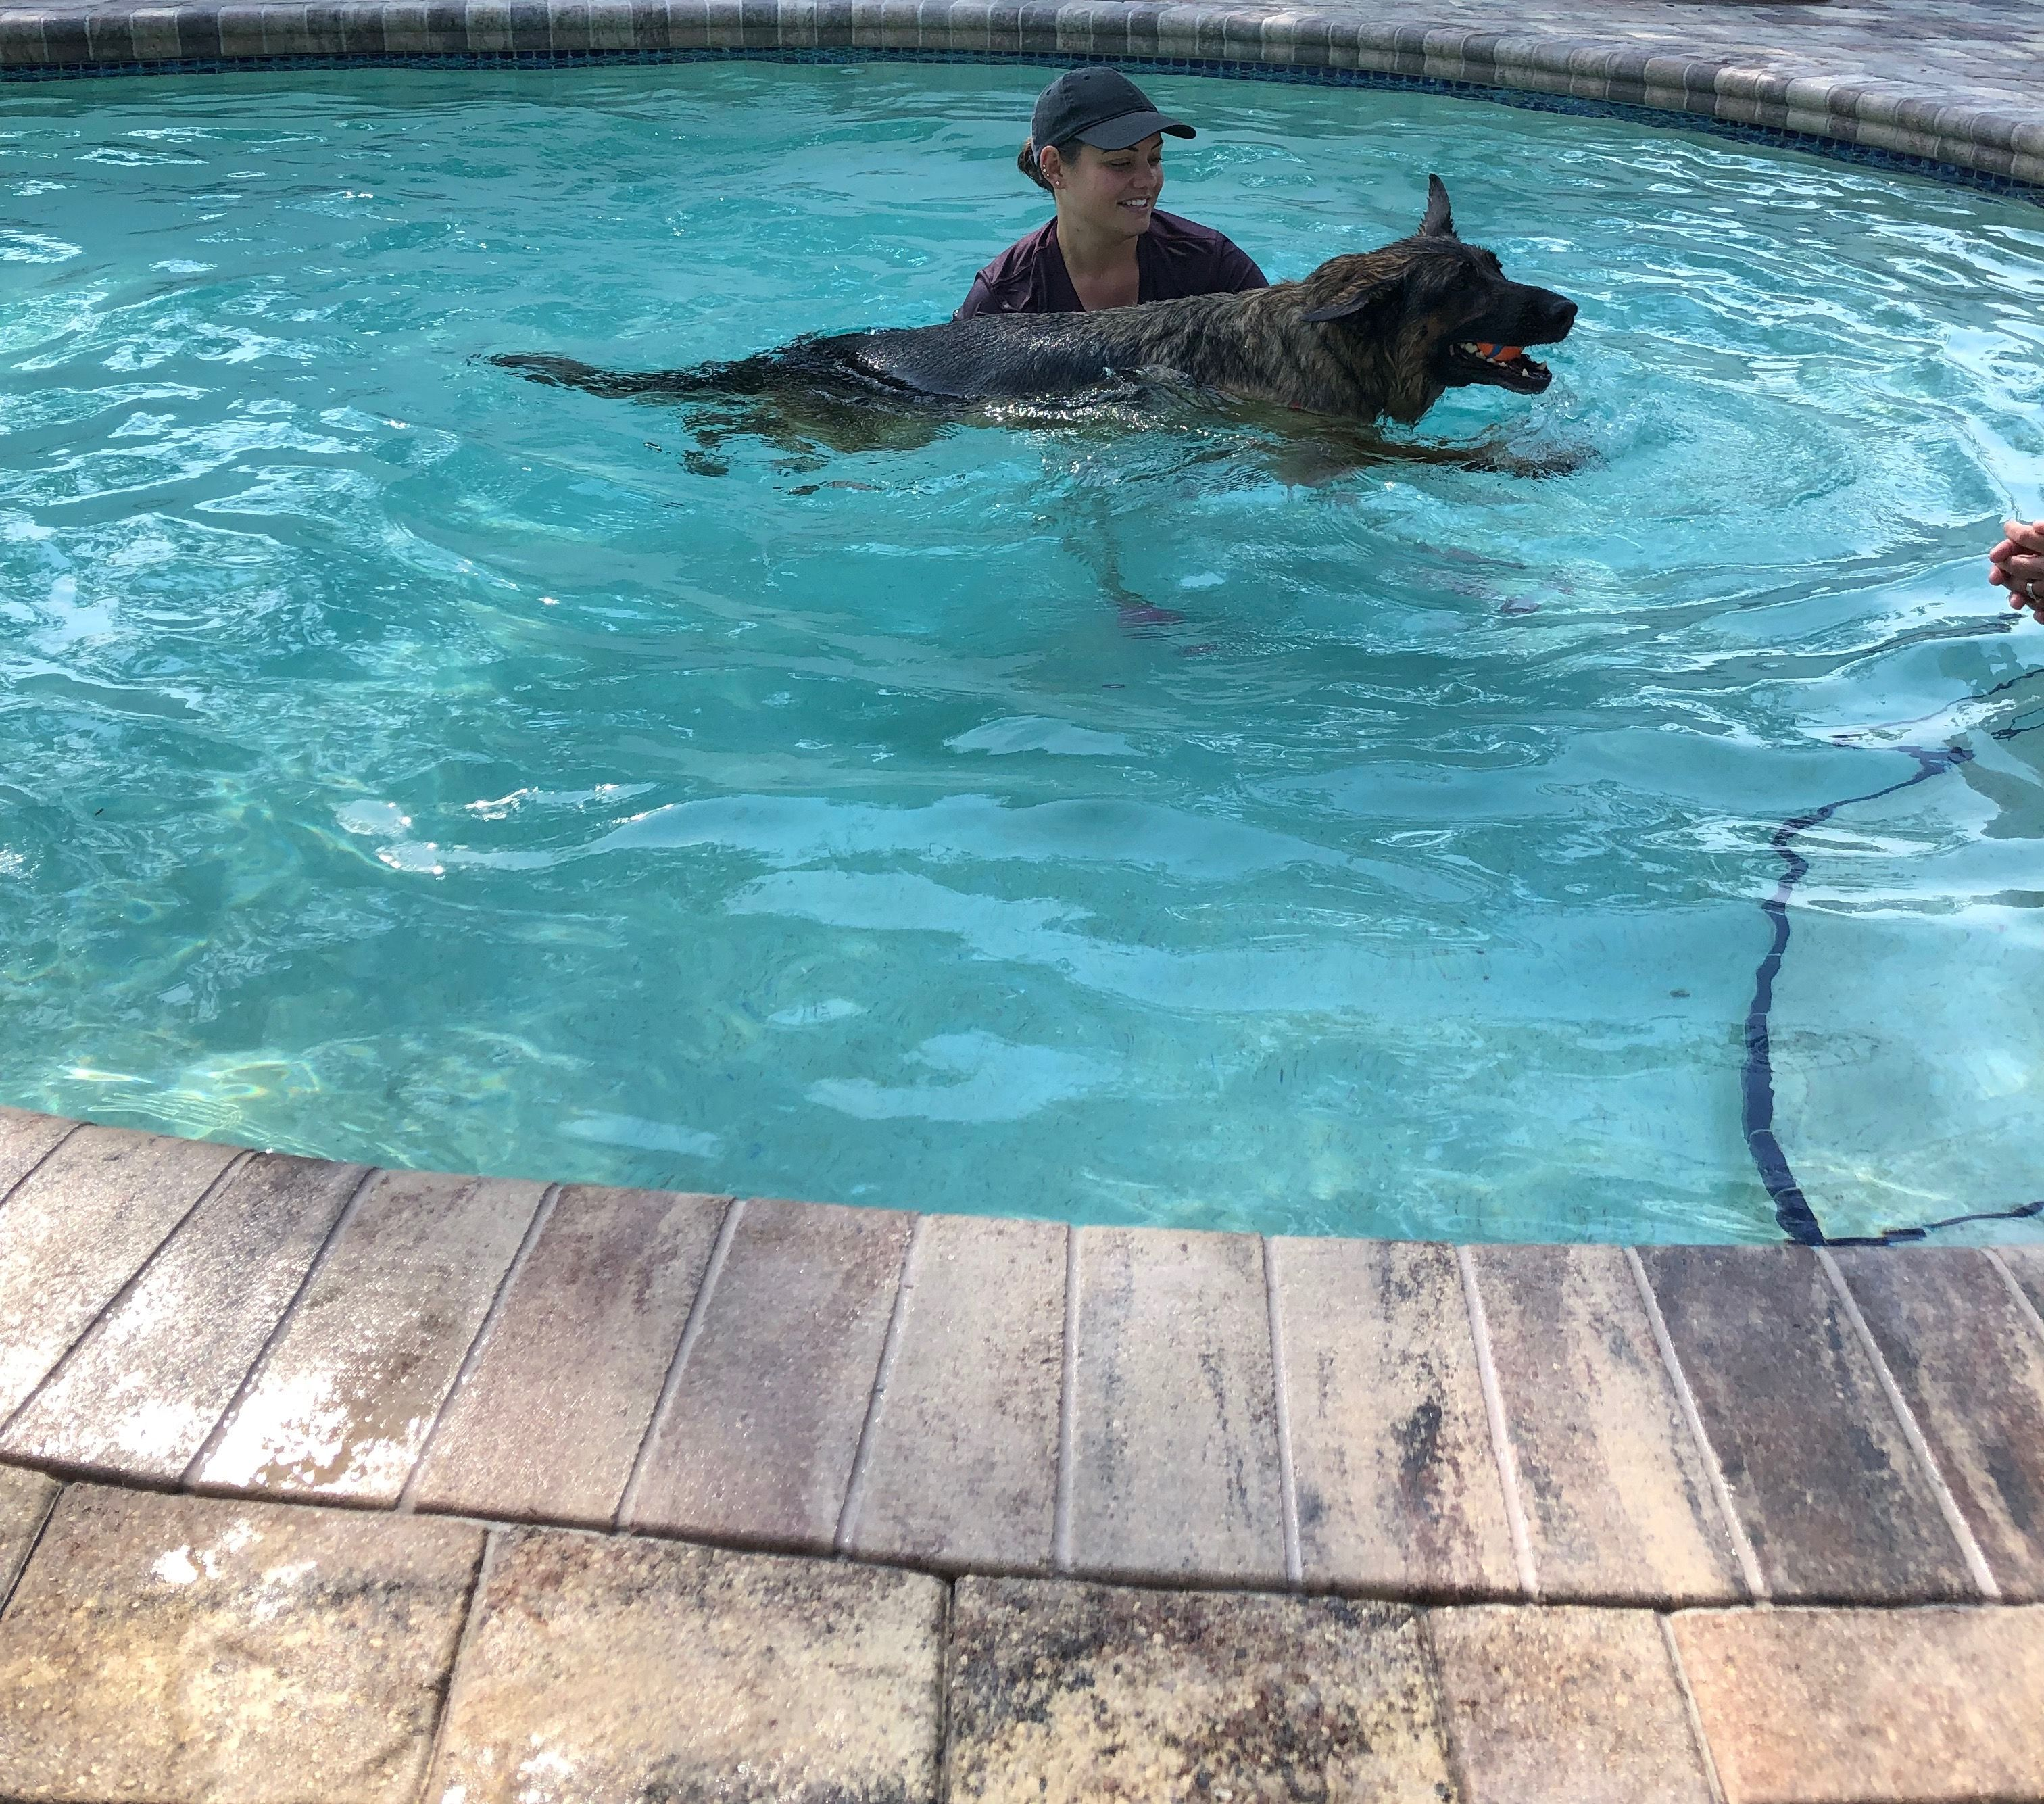 Vader A German Shepherd Swims To Heal From His Back Surgery Hydrotherapy Strengthens His Joints And Helps Regrow Lost Mus Hydrotherapy Swimming Workout Dogs